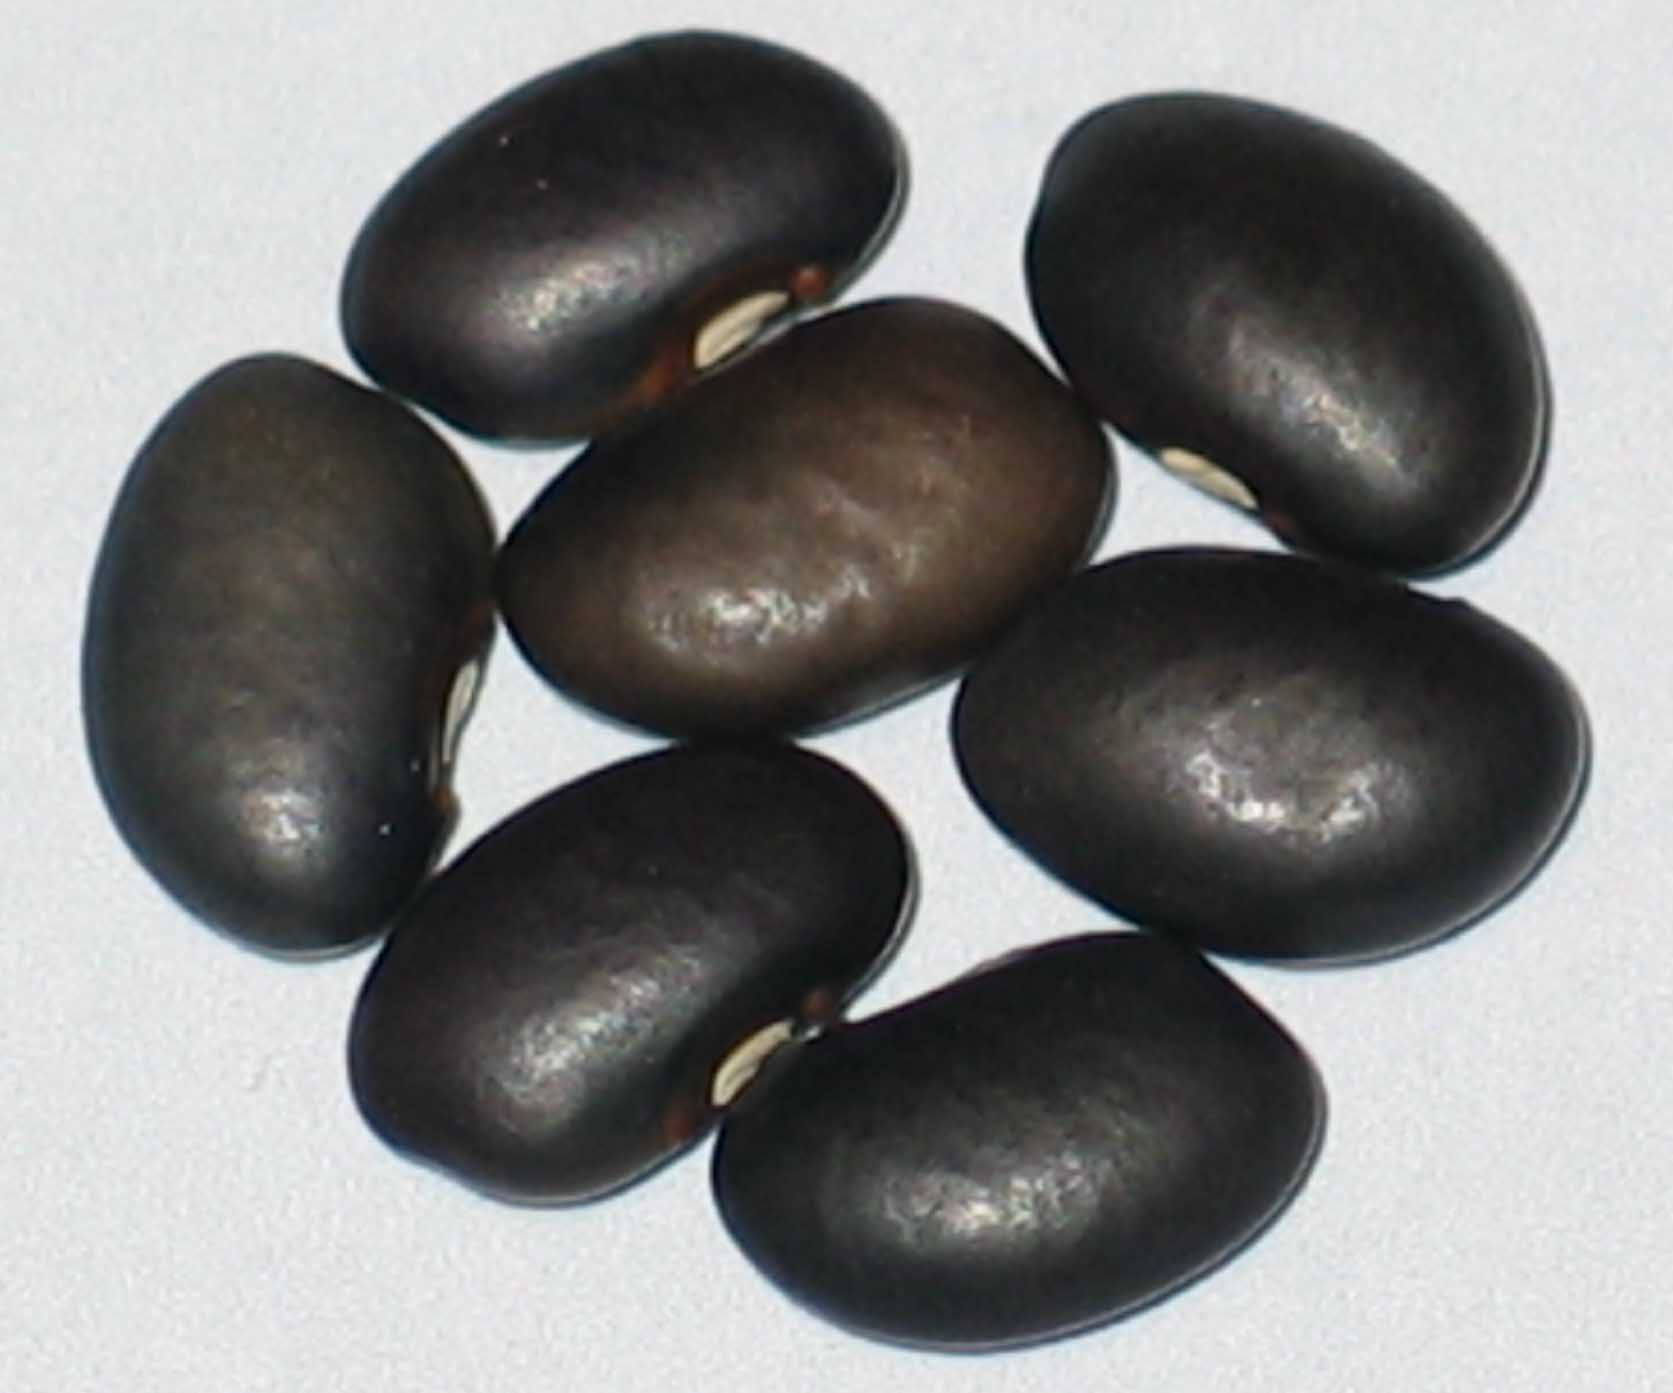 image of CIAT Bean G-4637 beans